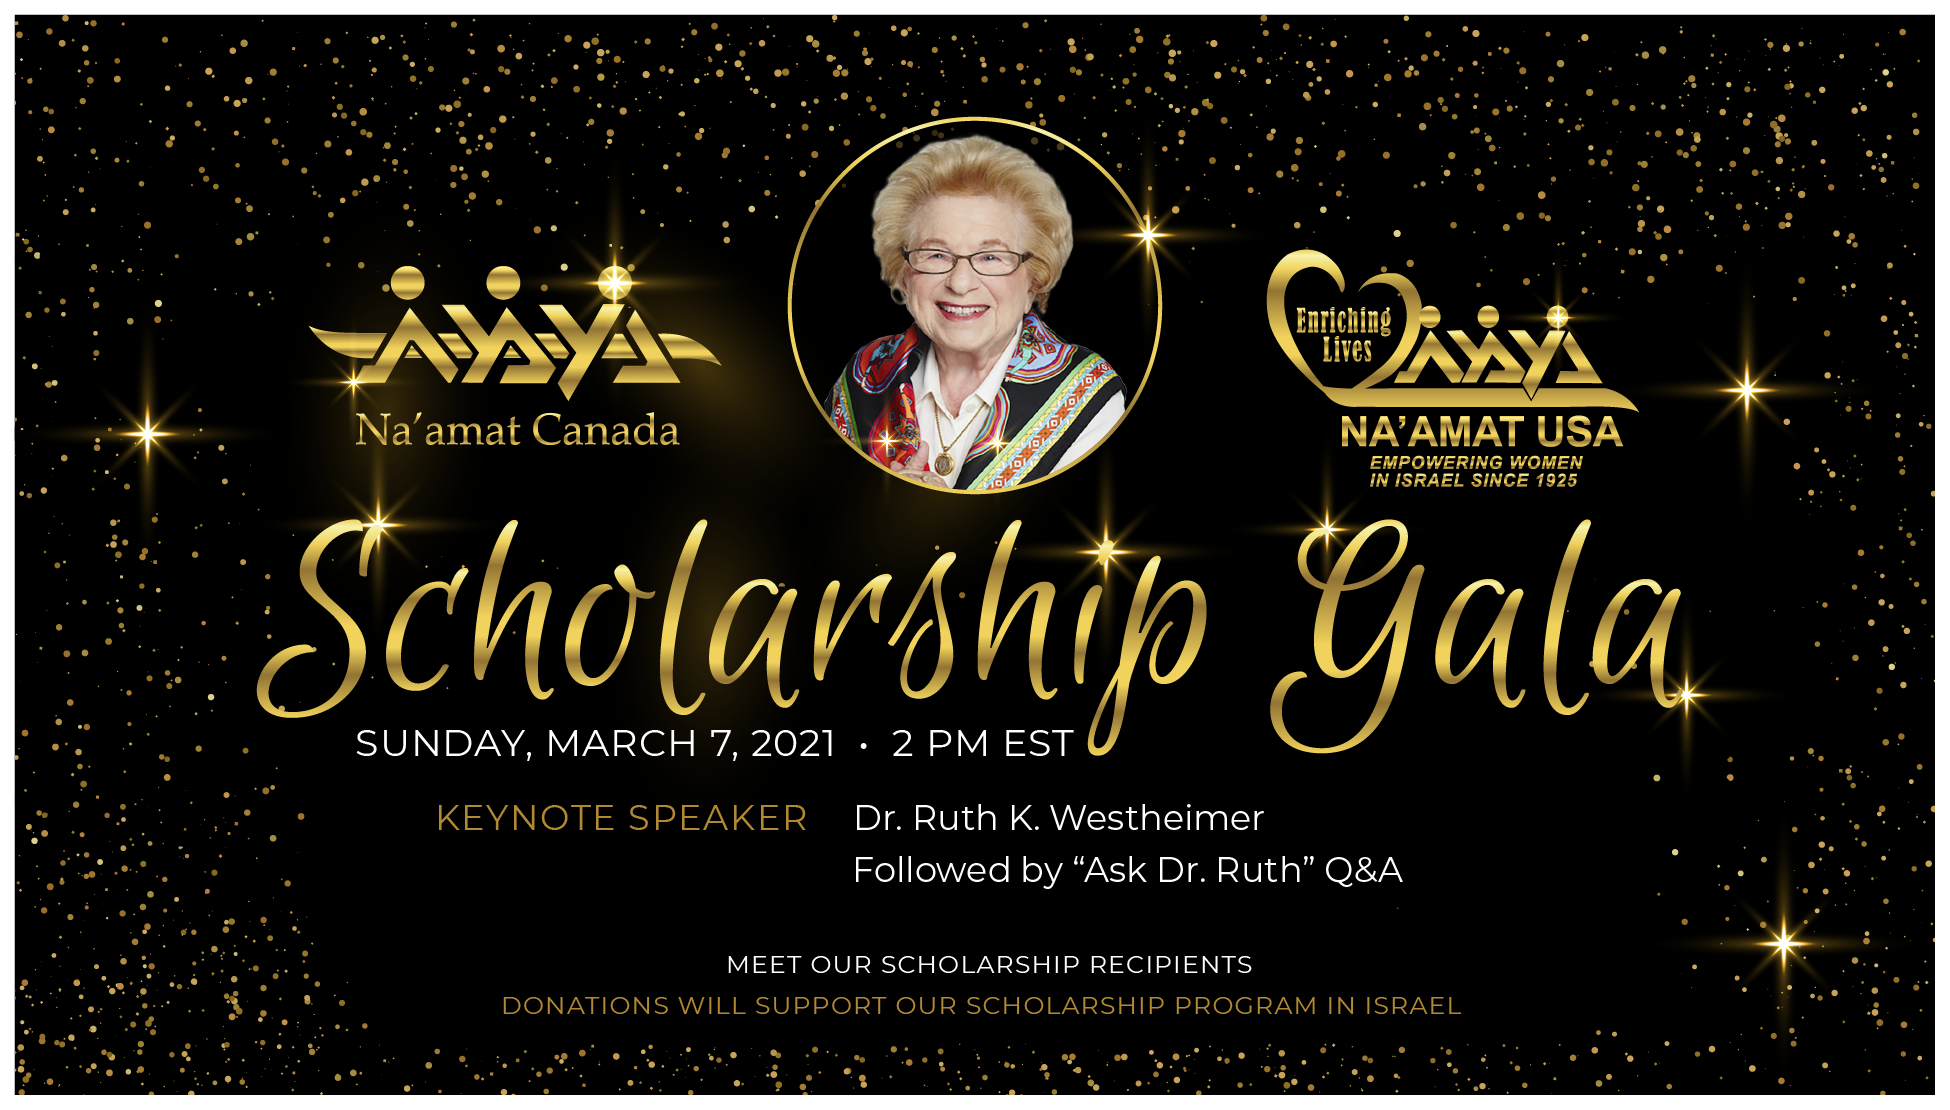 Scholarship Gala with Dr. Ruth